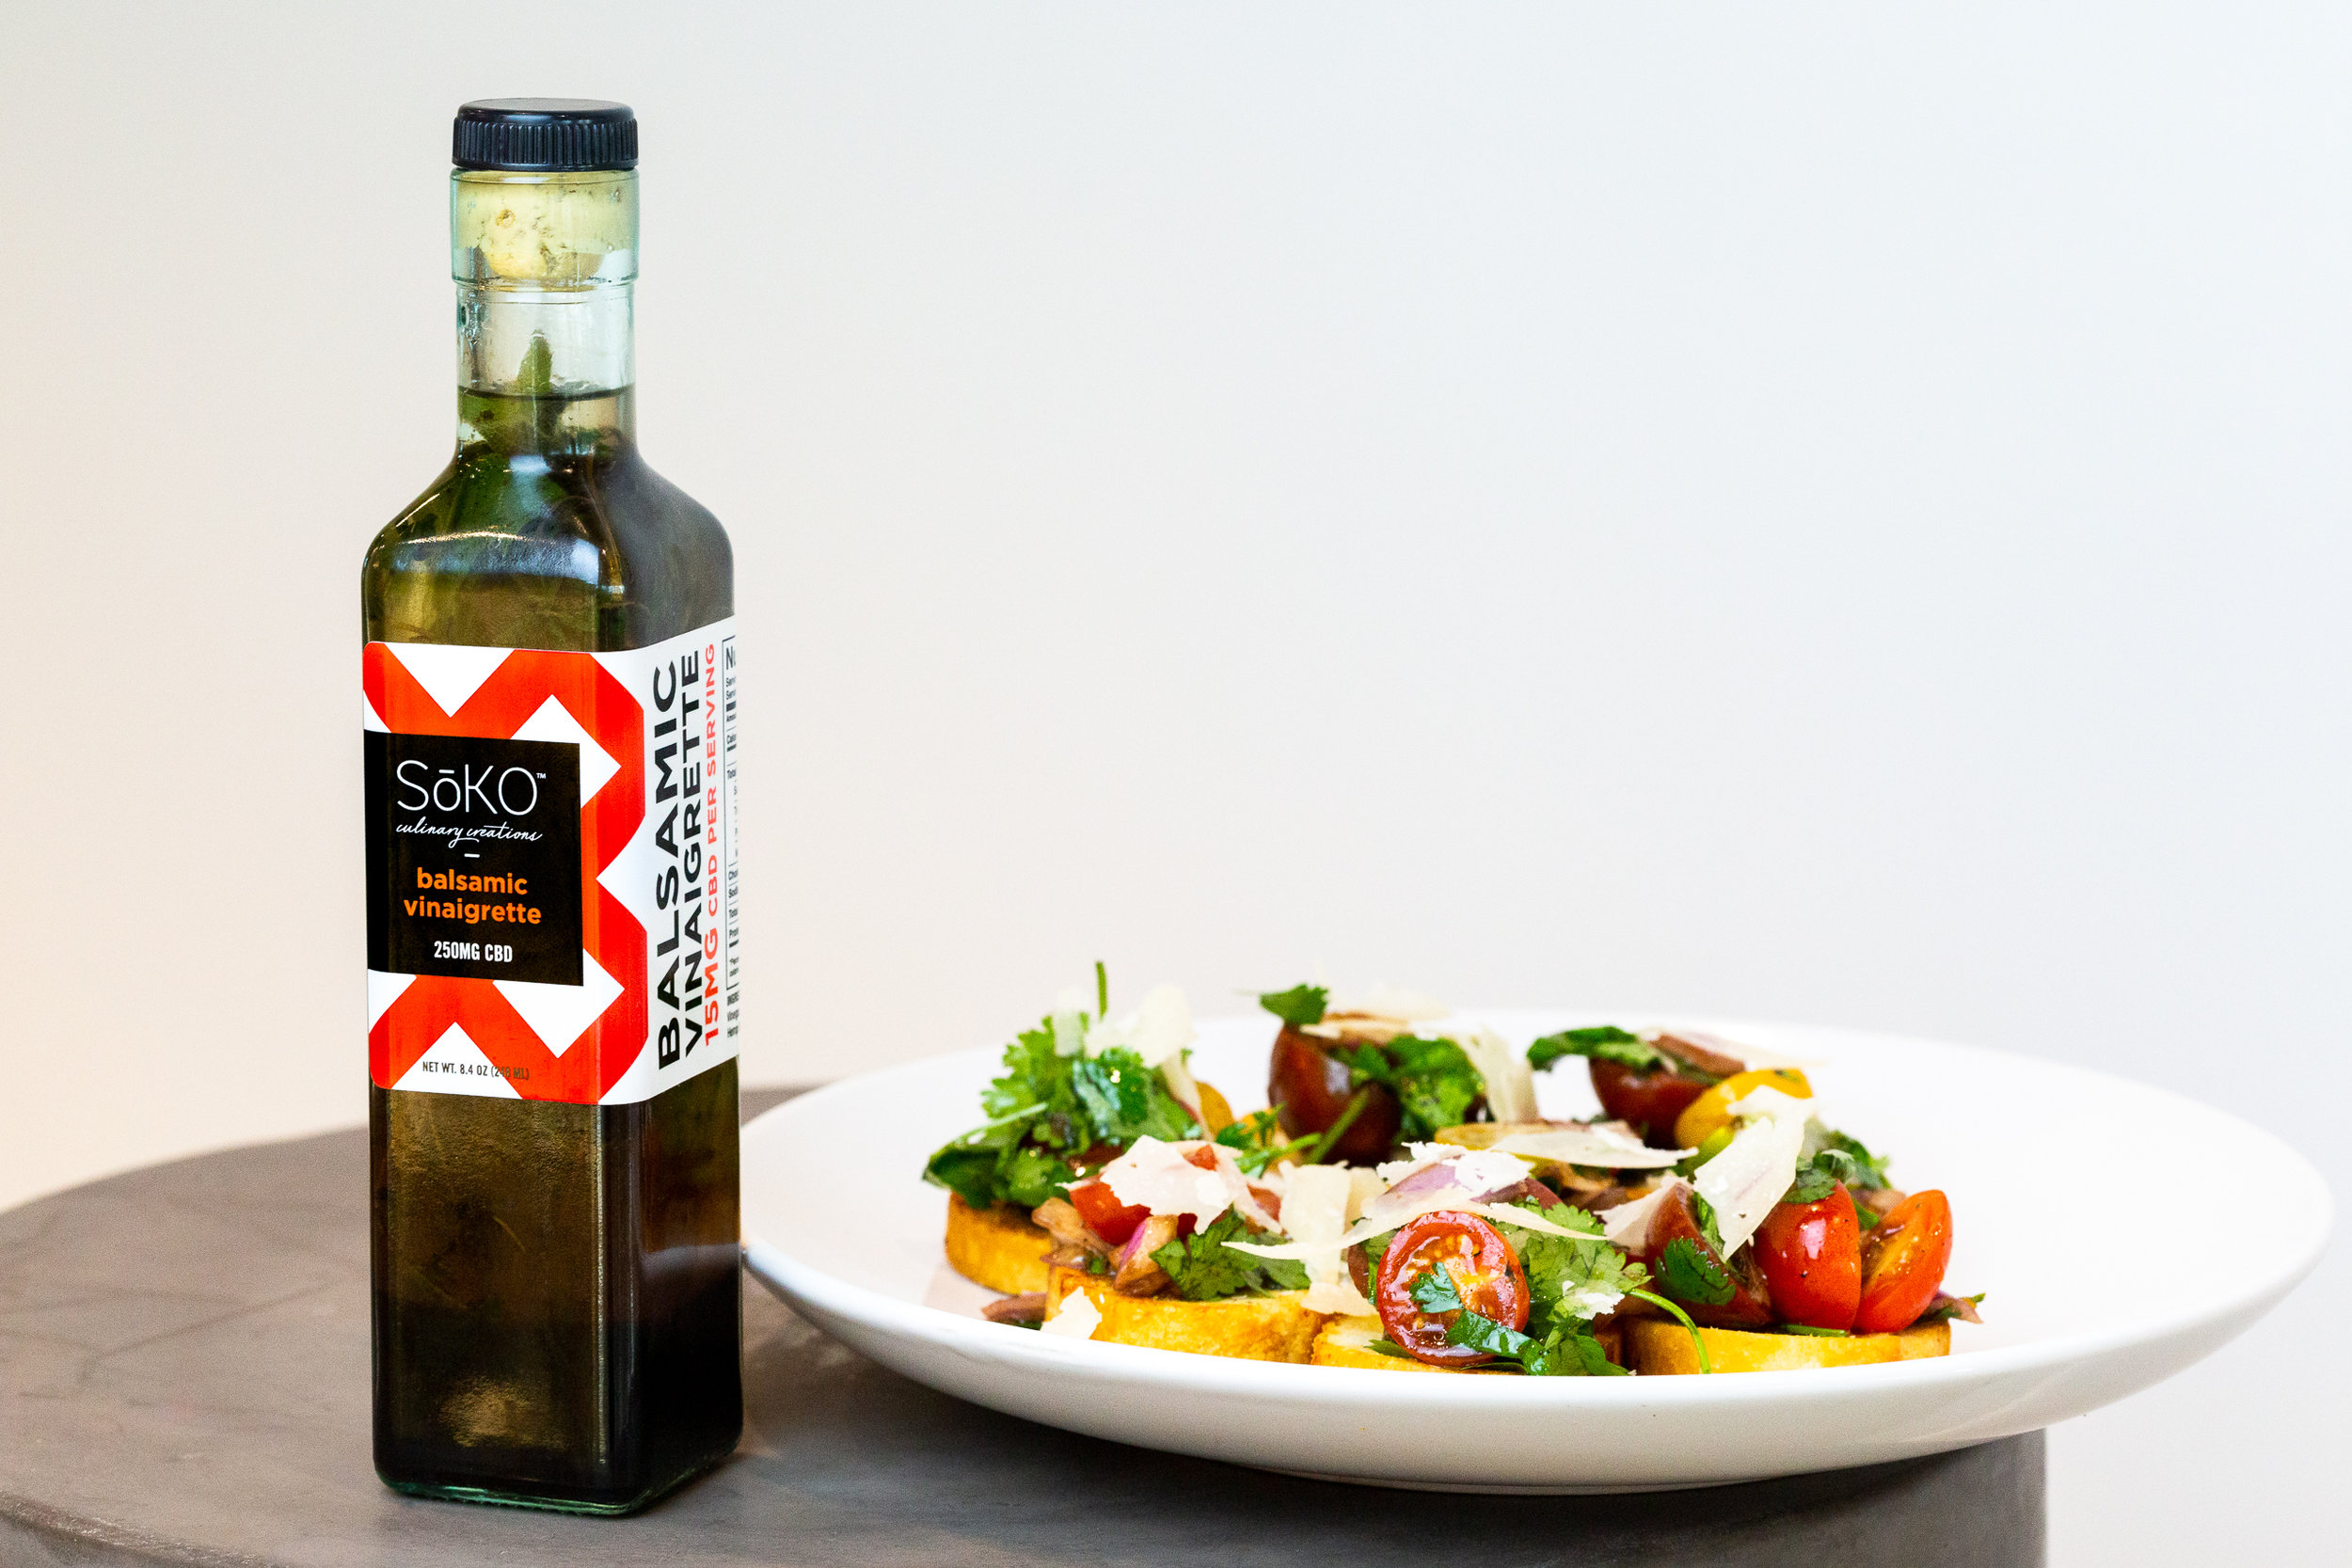 Soko CBD Infused Balsamic Salad Recipe — CBD Oil That Works